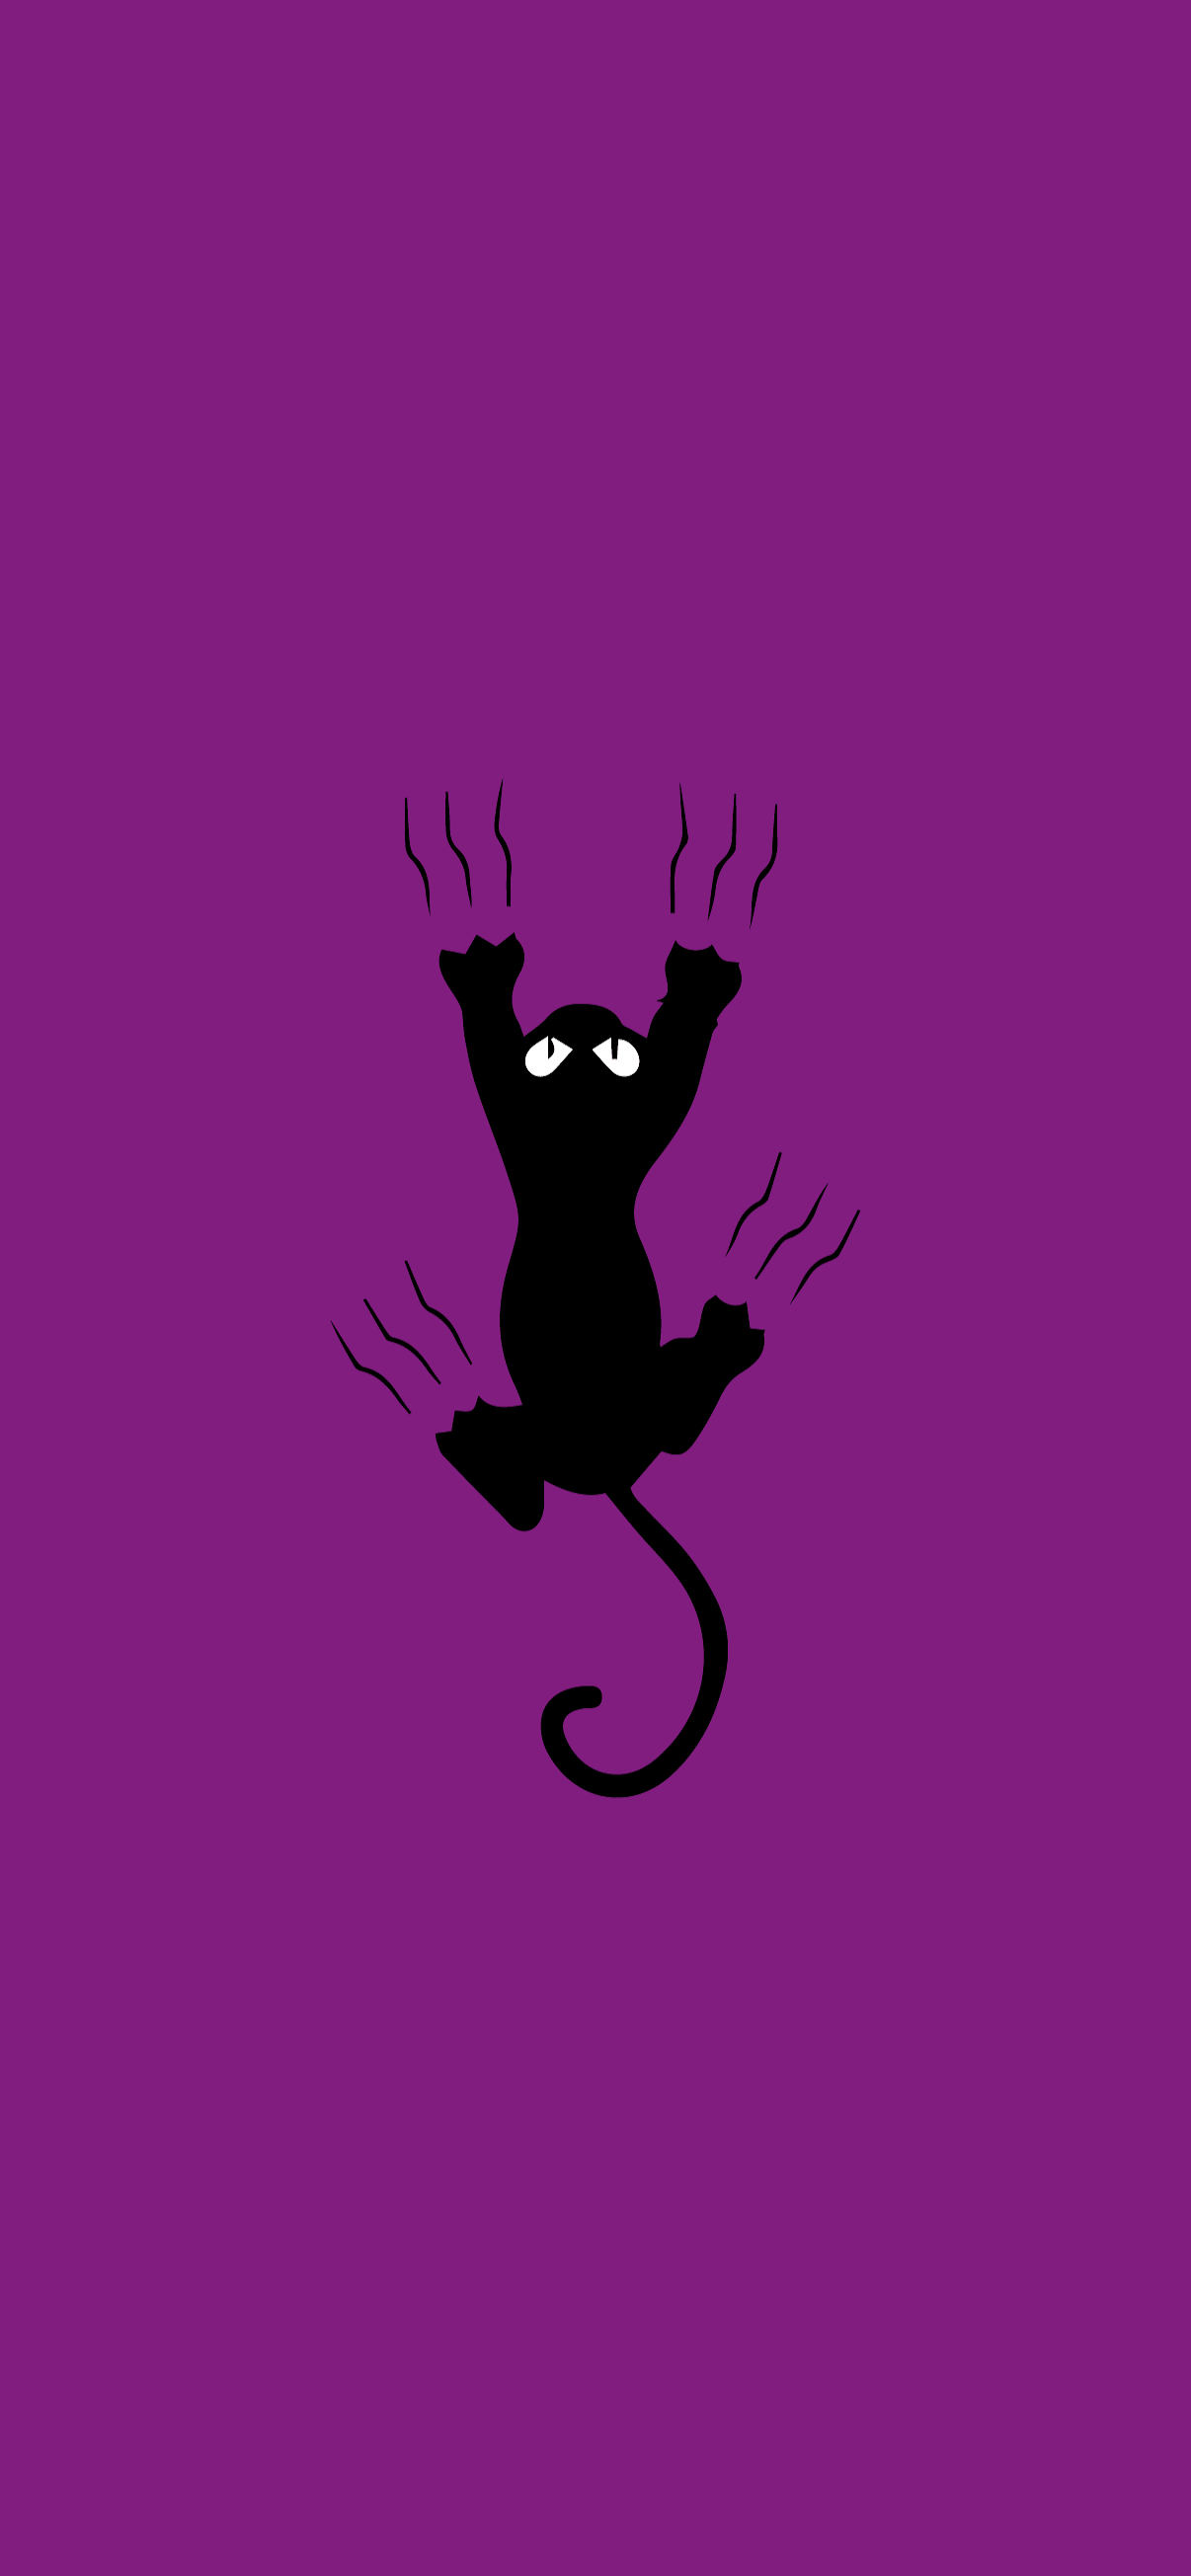 cat scratching minimalist wallpaper purple hd for phone